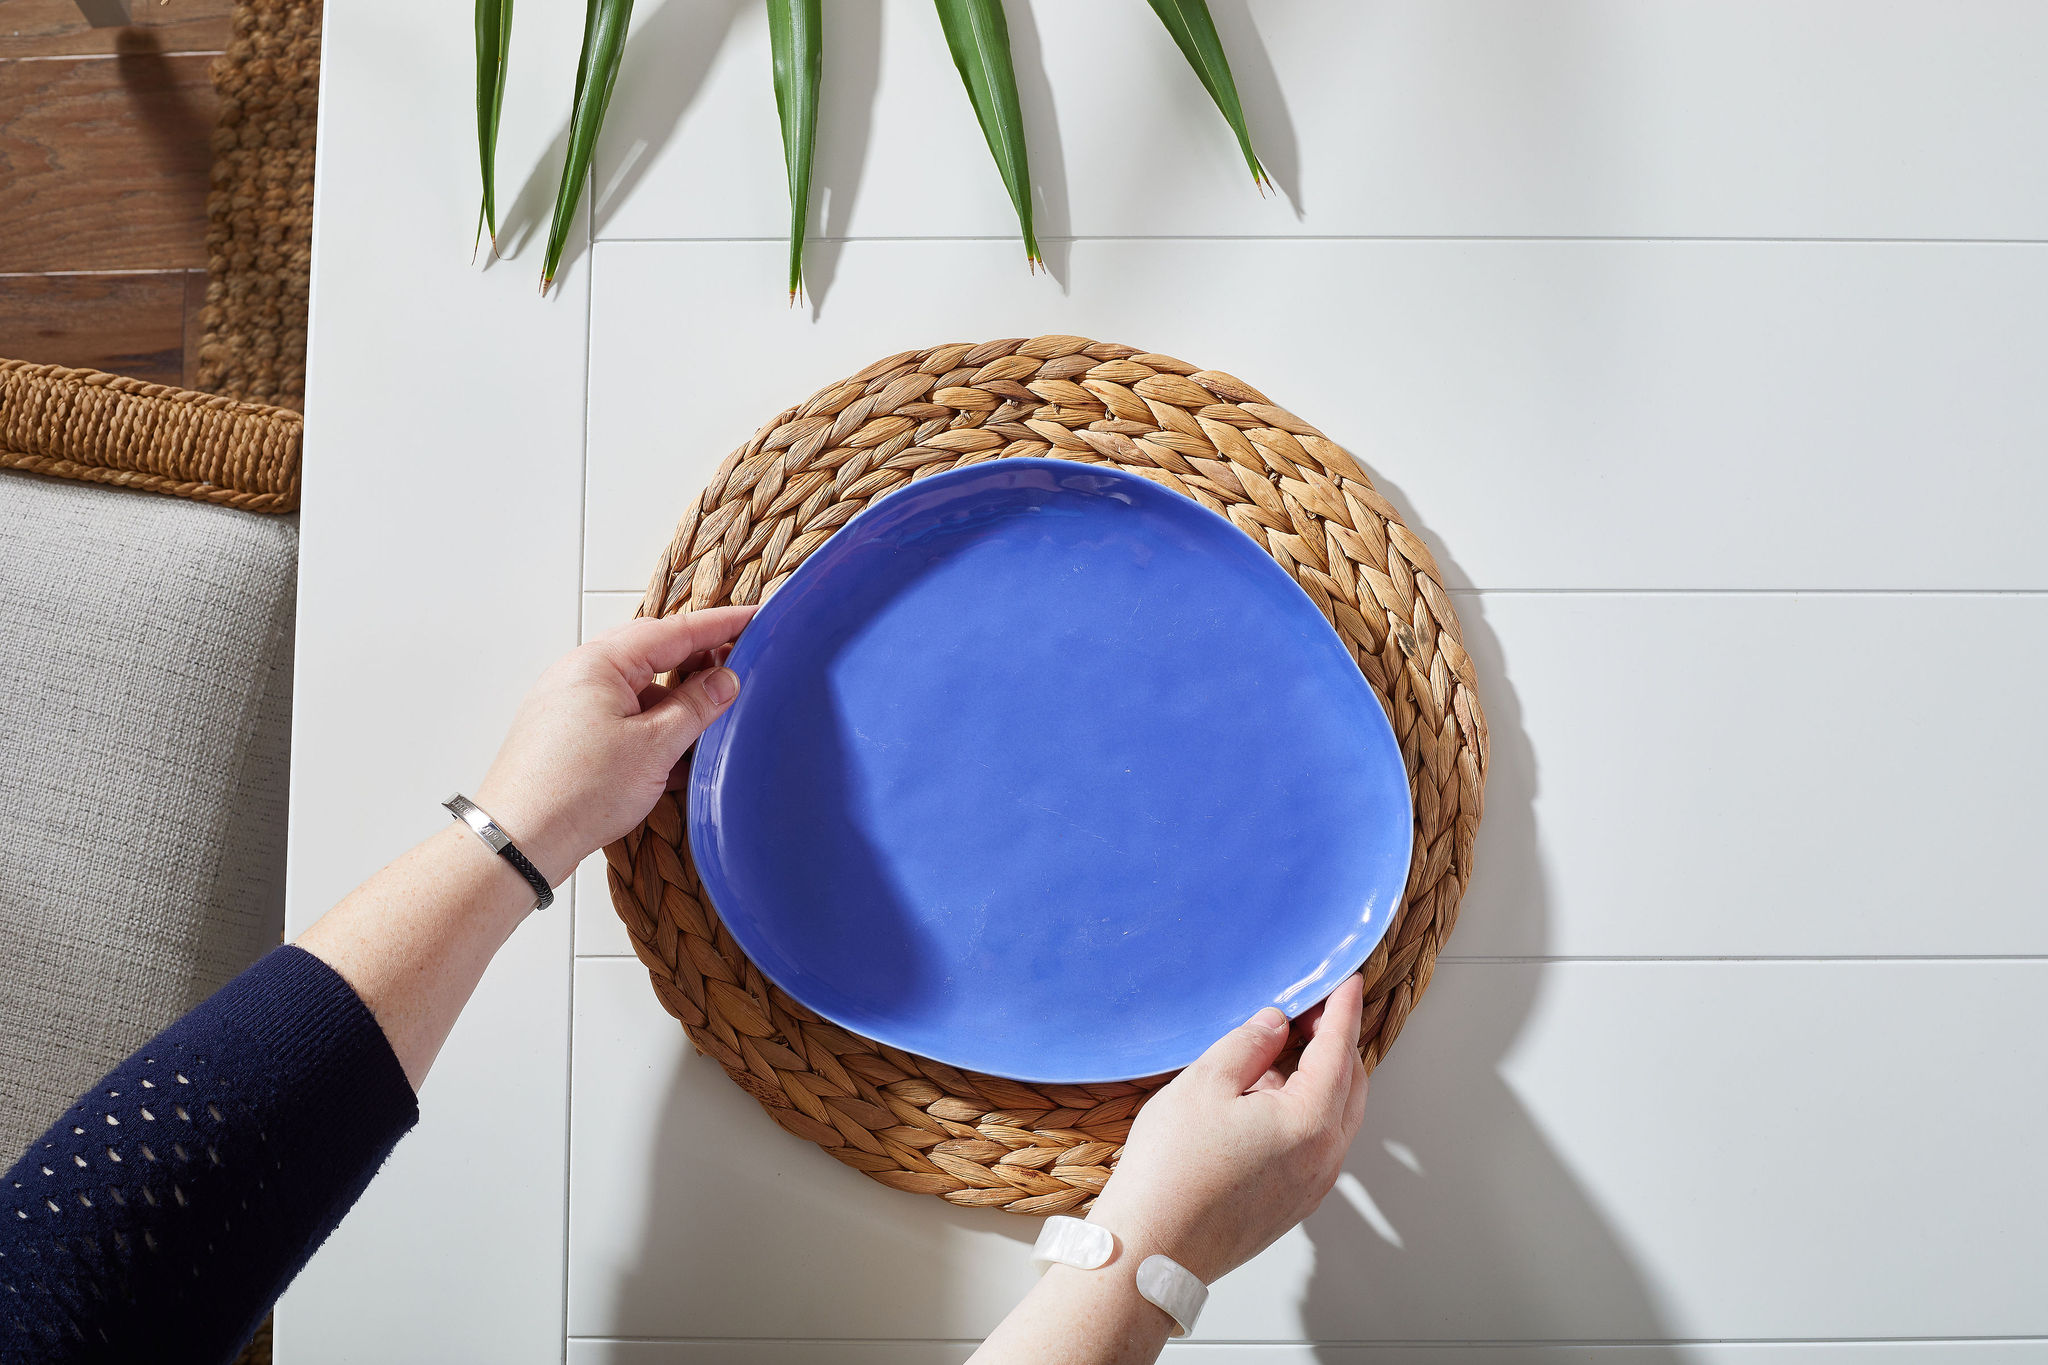 Woven placemat with a blue plate on top